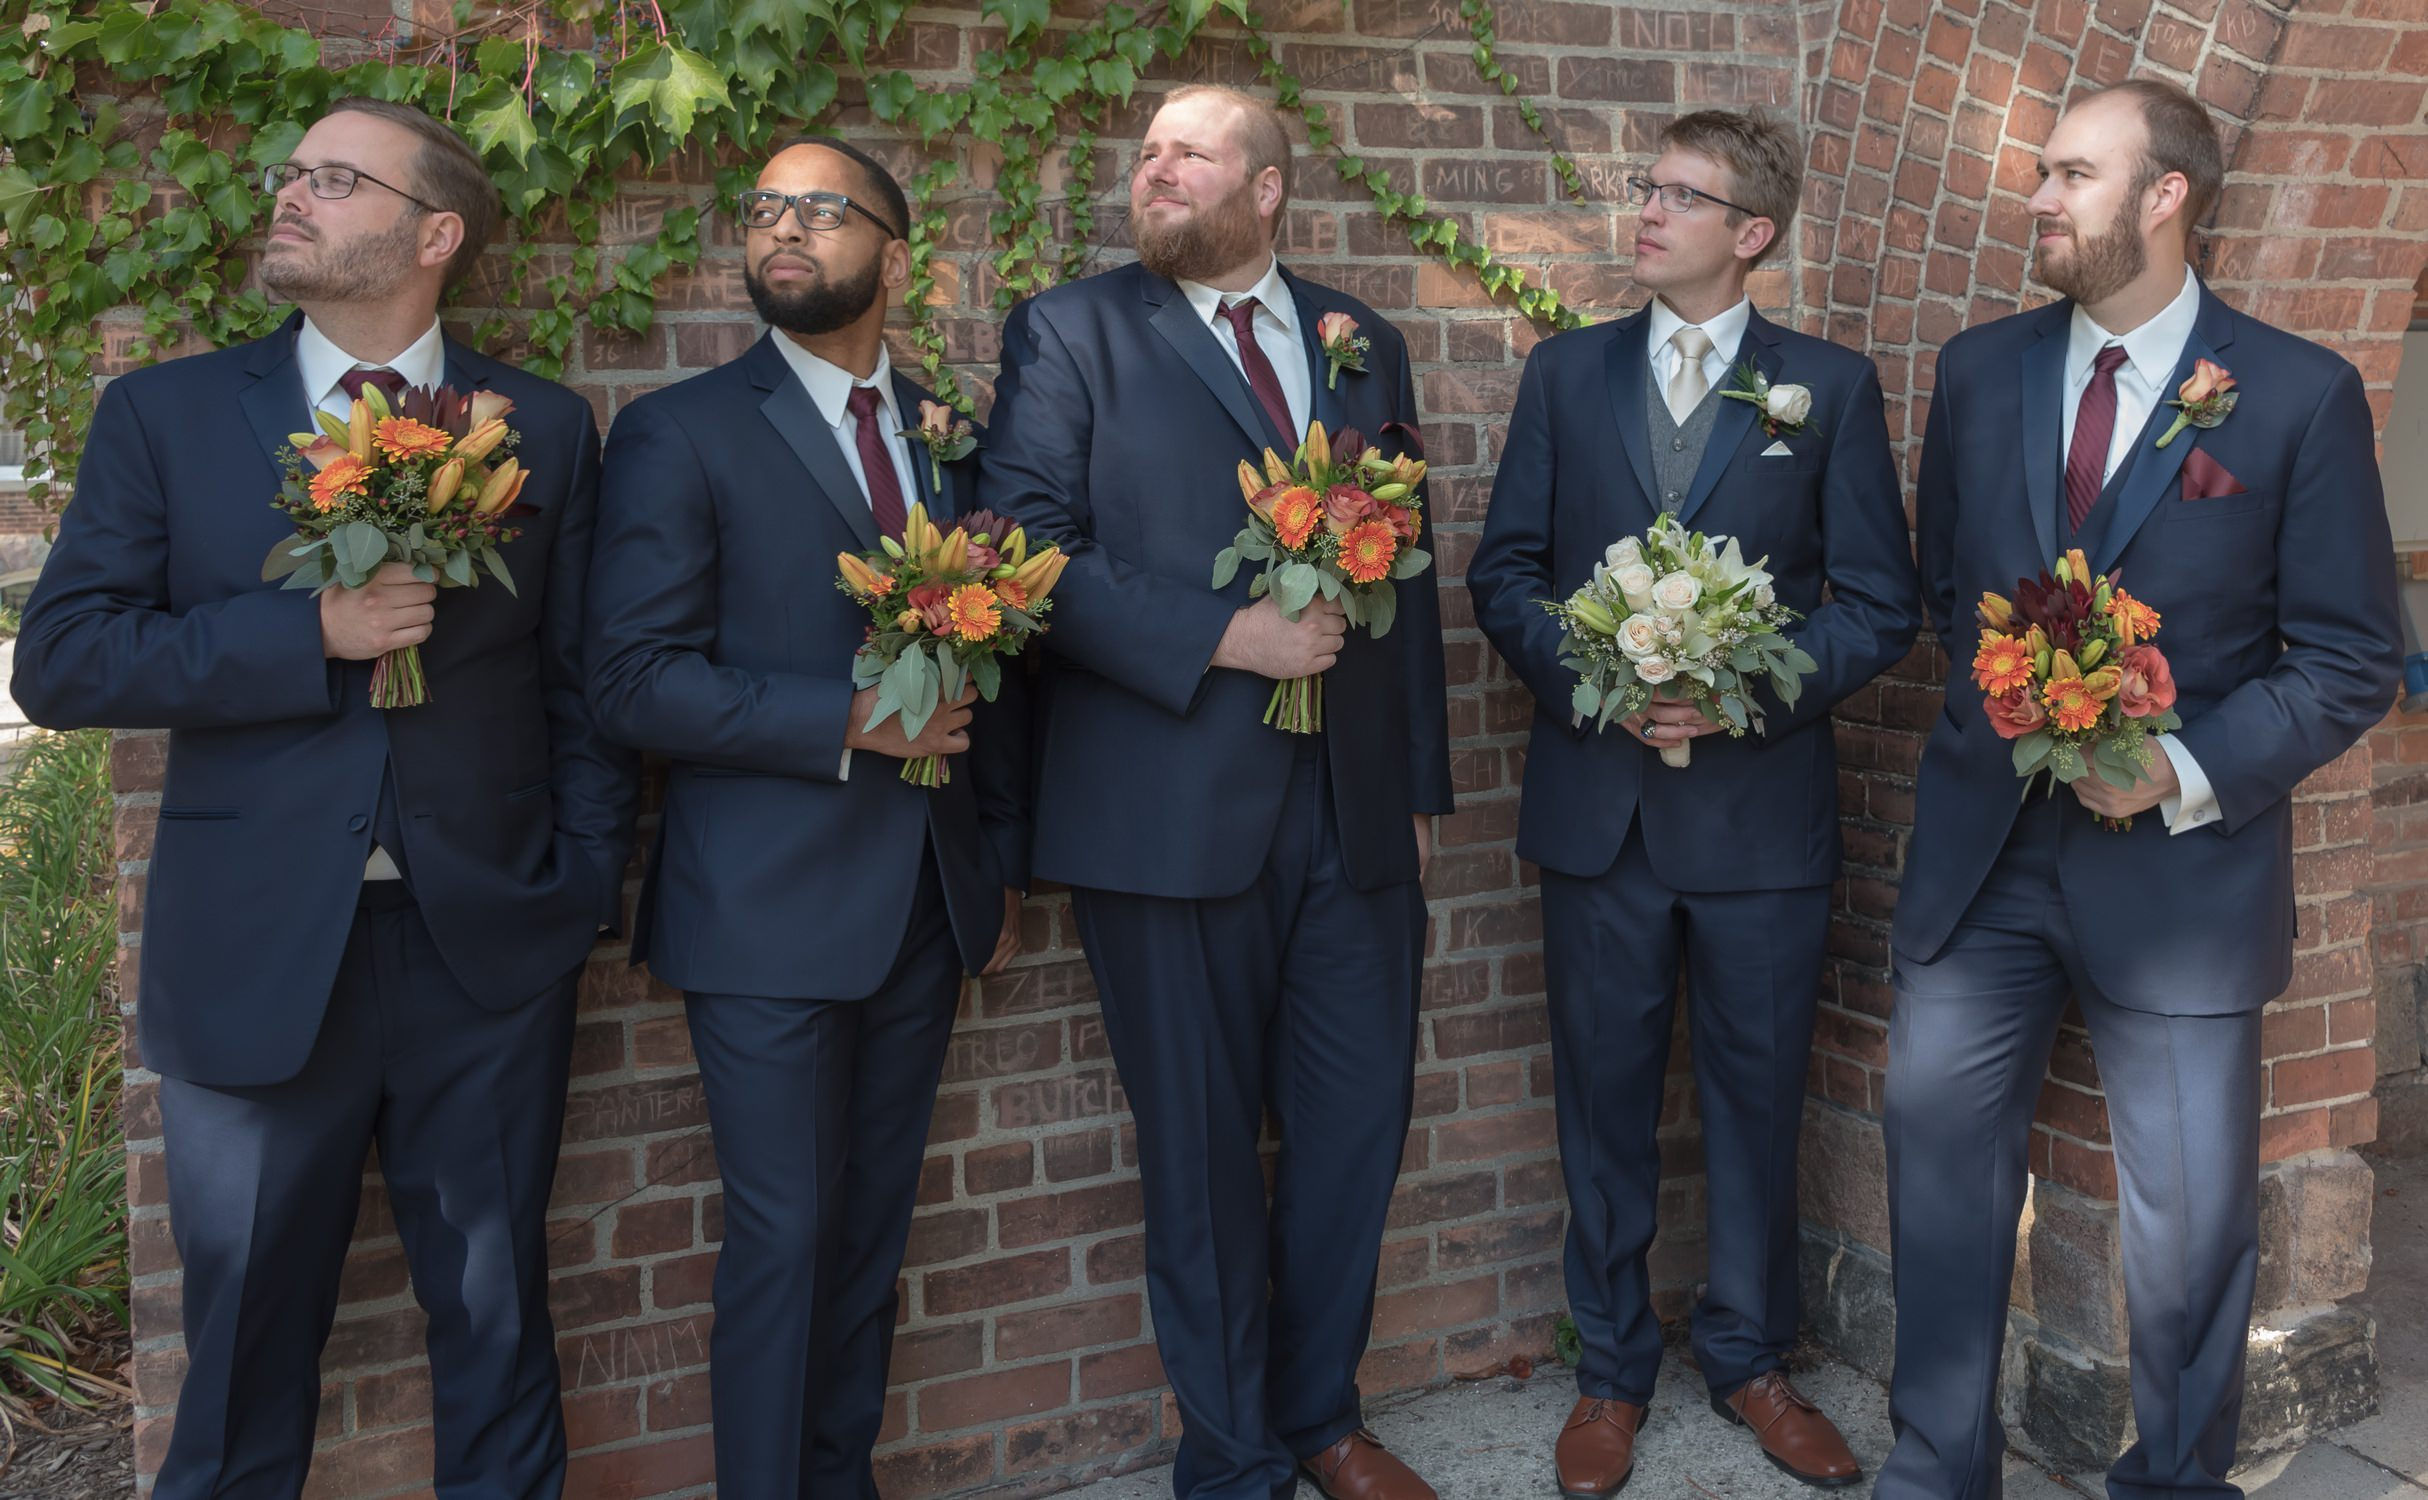 Funny Groomsmen With Flowers